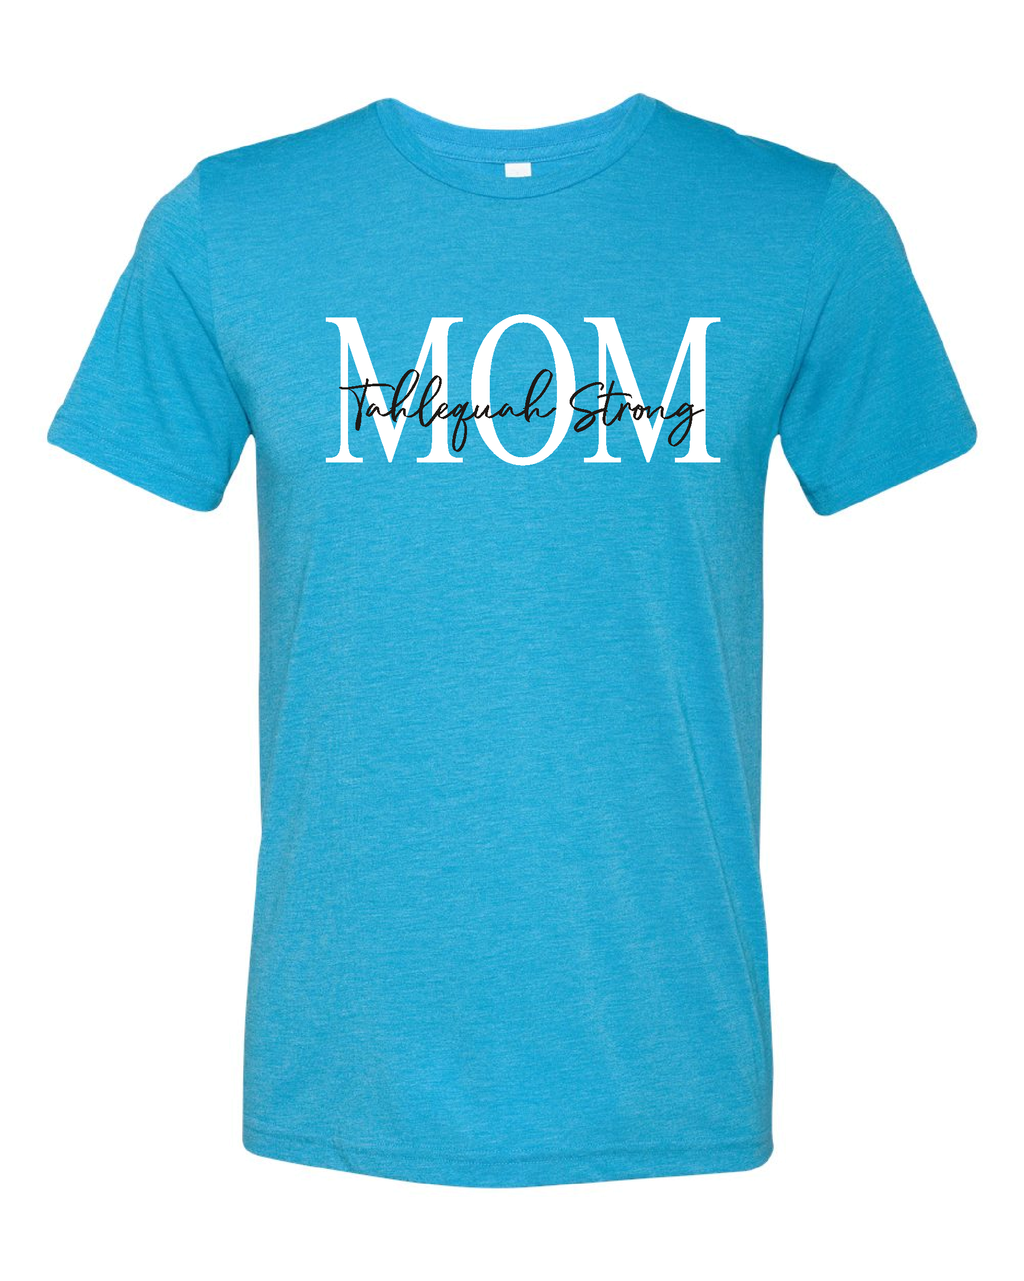 Tahlequah Strong MOM Aqua Crew Neck